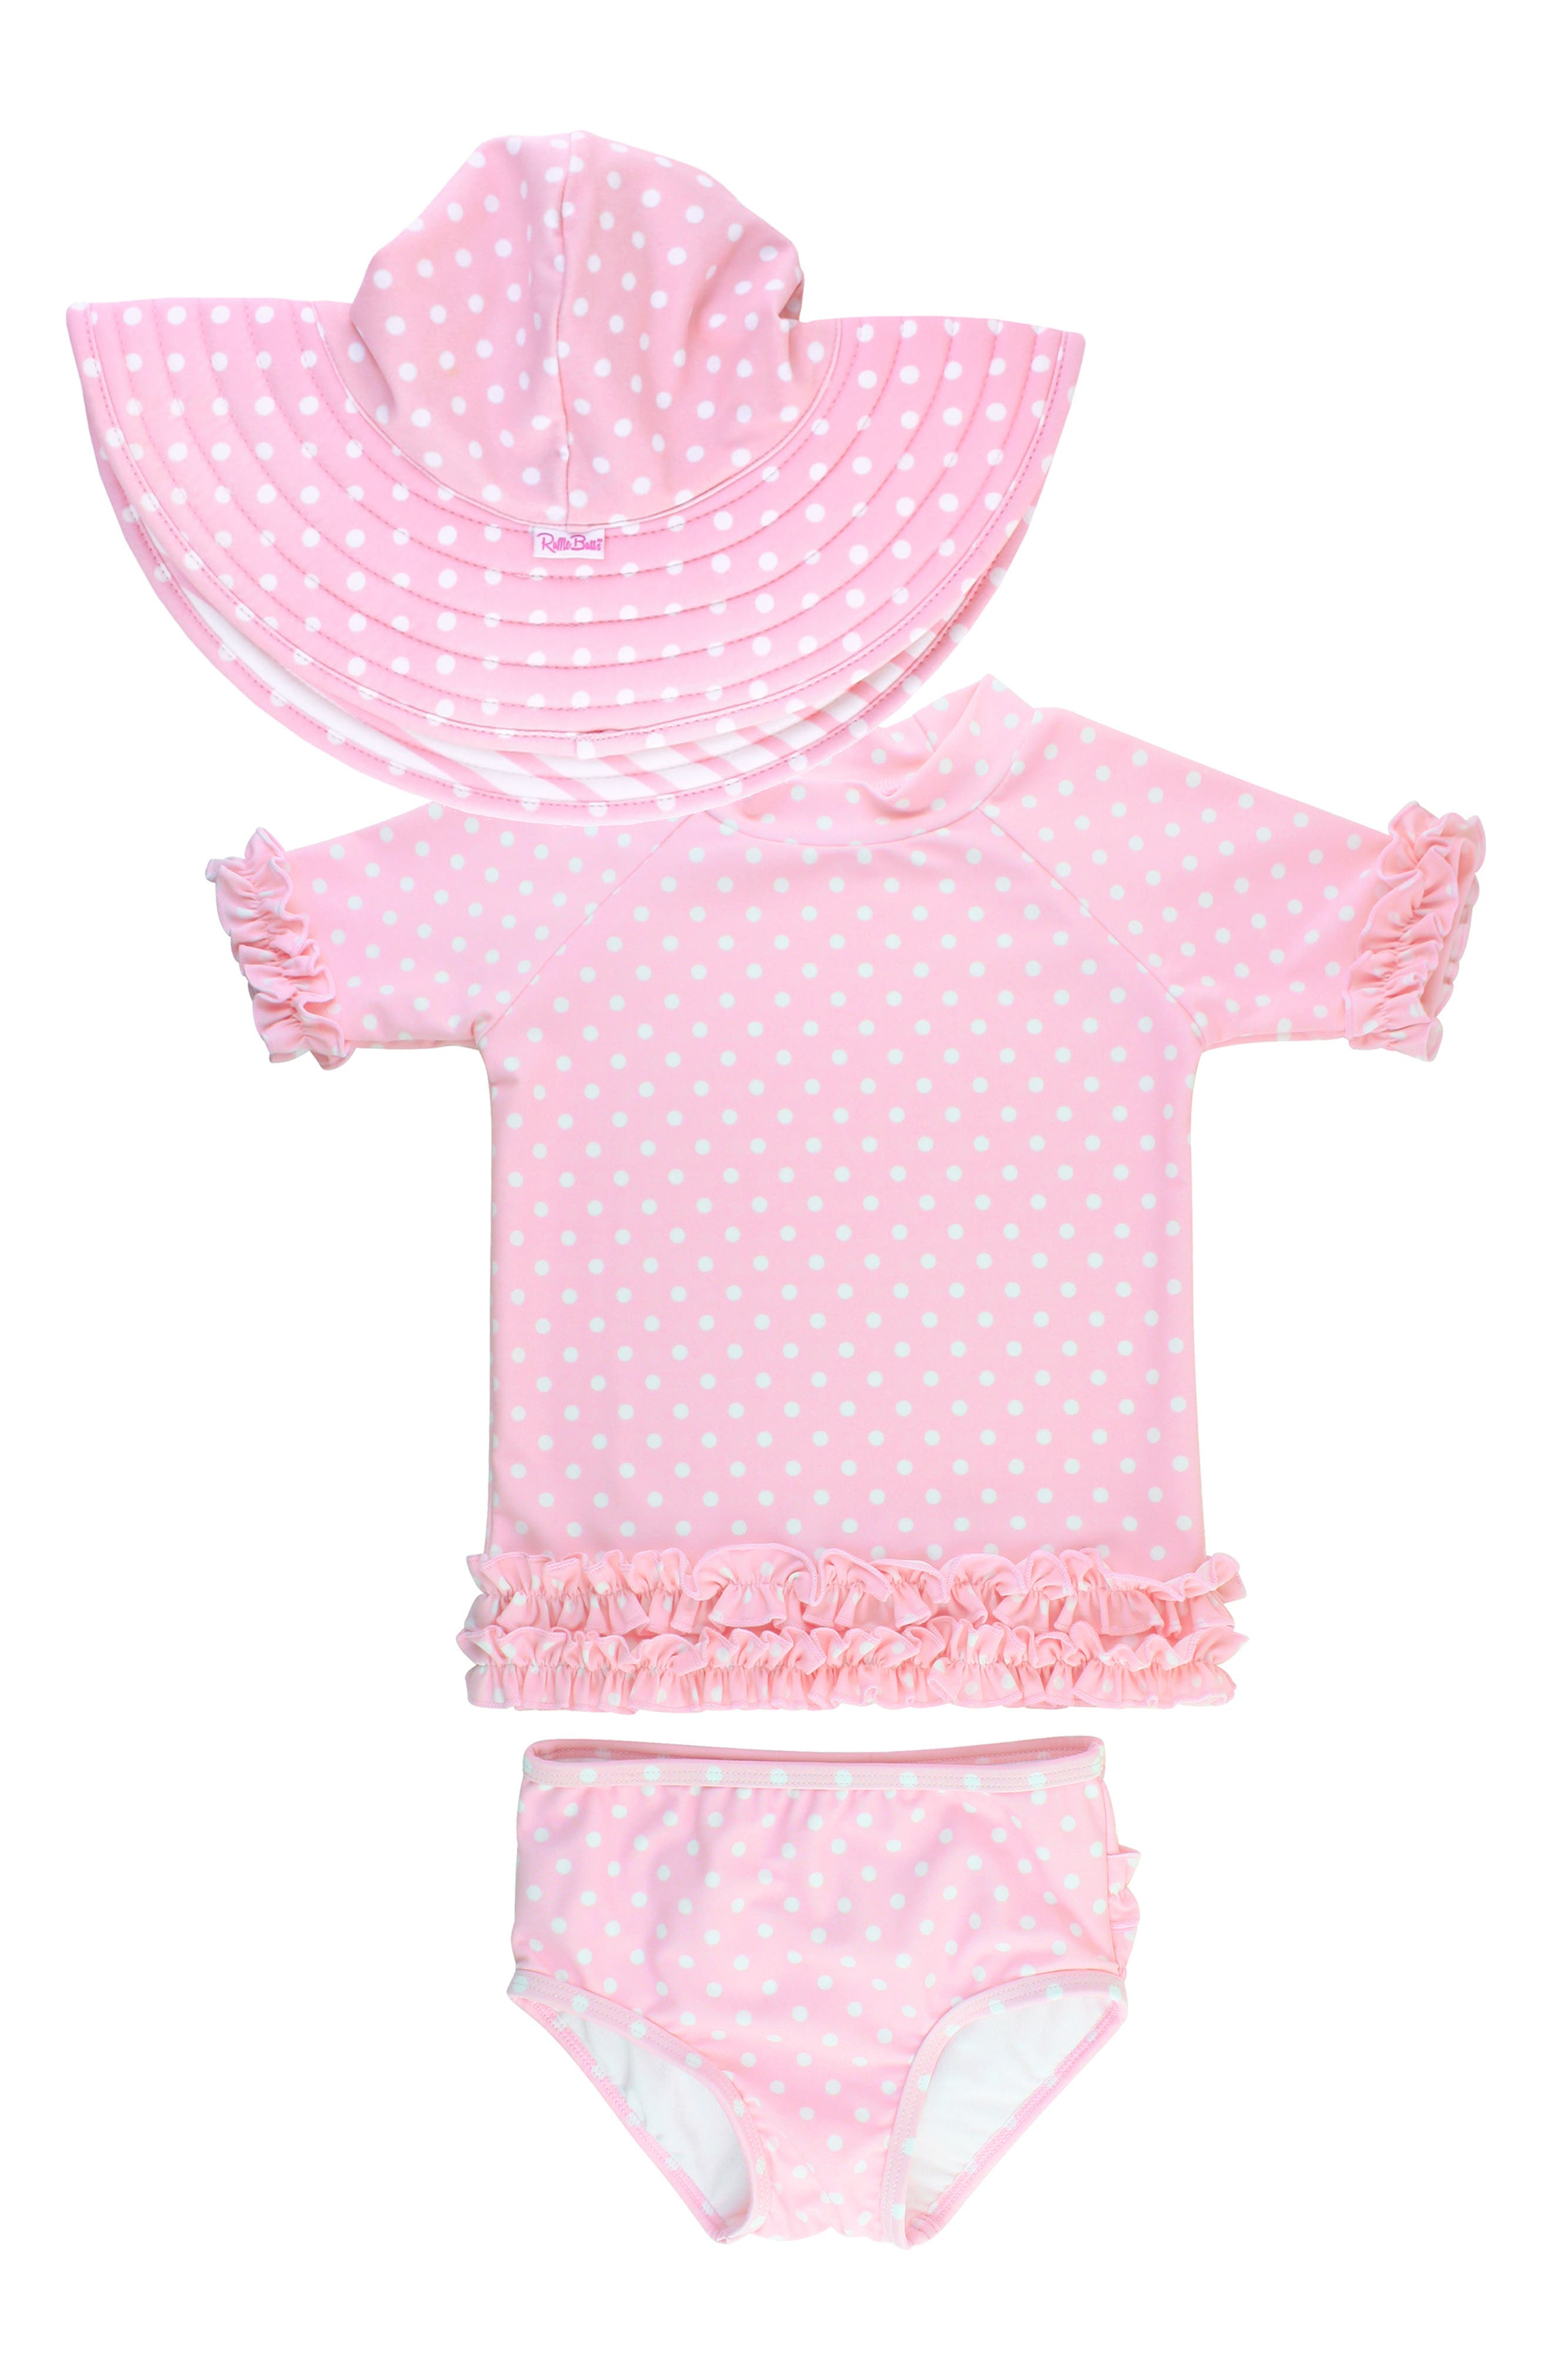 Give her a spot-on beach look with this matching polka dot swim ensemble with a ruffle-edged rashguard, ruffle-backed bottoms and a wide-brim hat. Style Name: Rufflebutts Polka Dot Two-Piece Rashguard & Hat Set (Toddler & Little Girl). Style Number: 6034898. Available in stores.